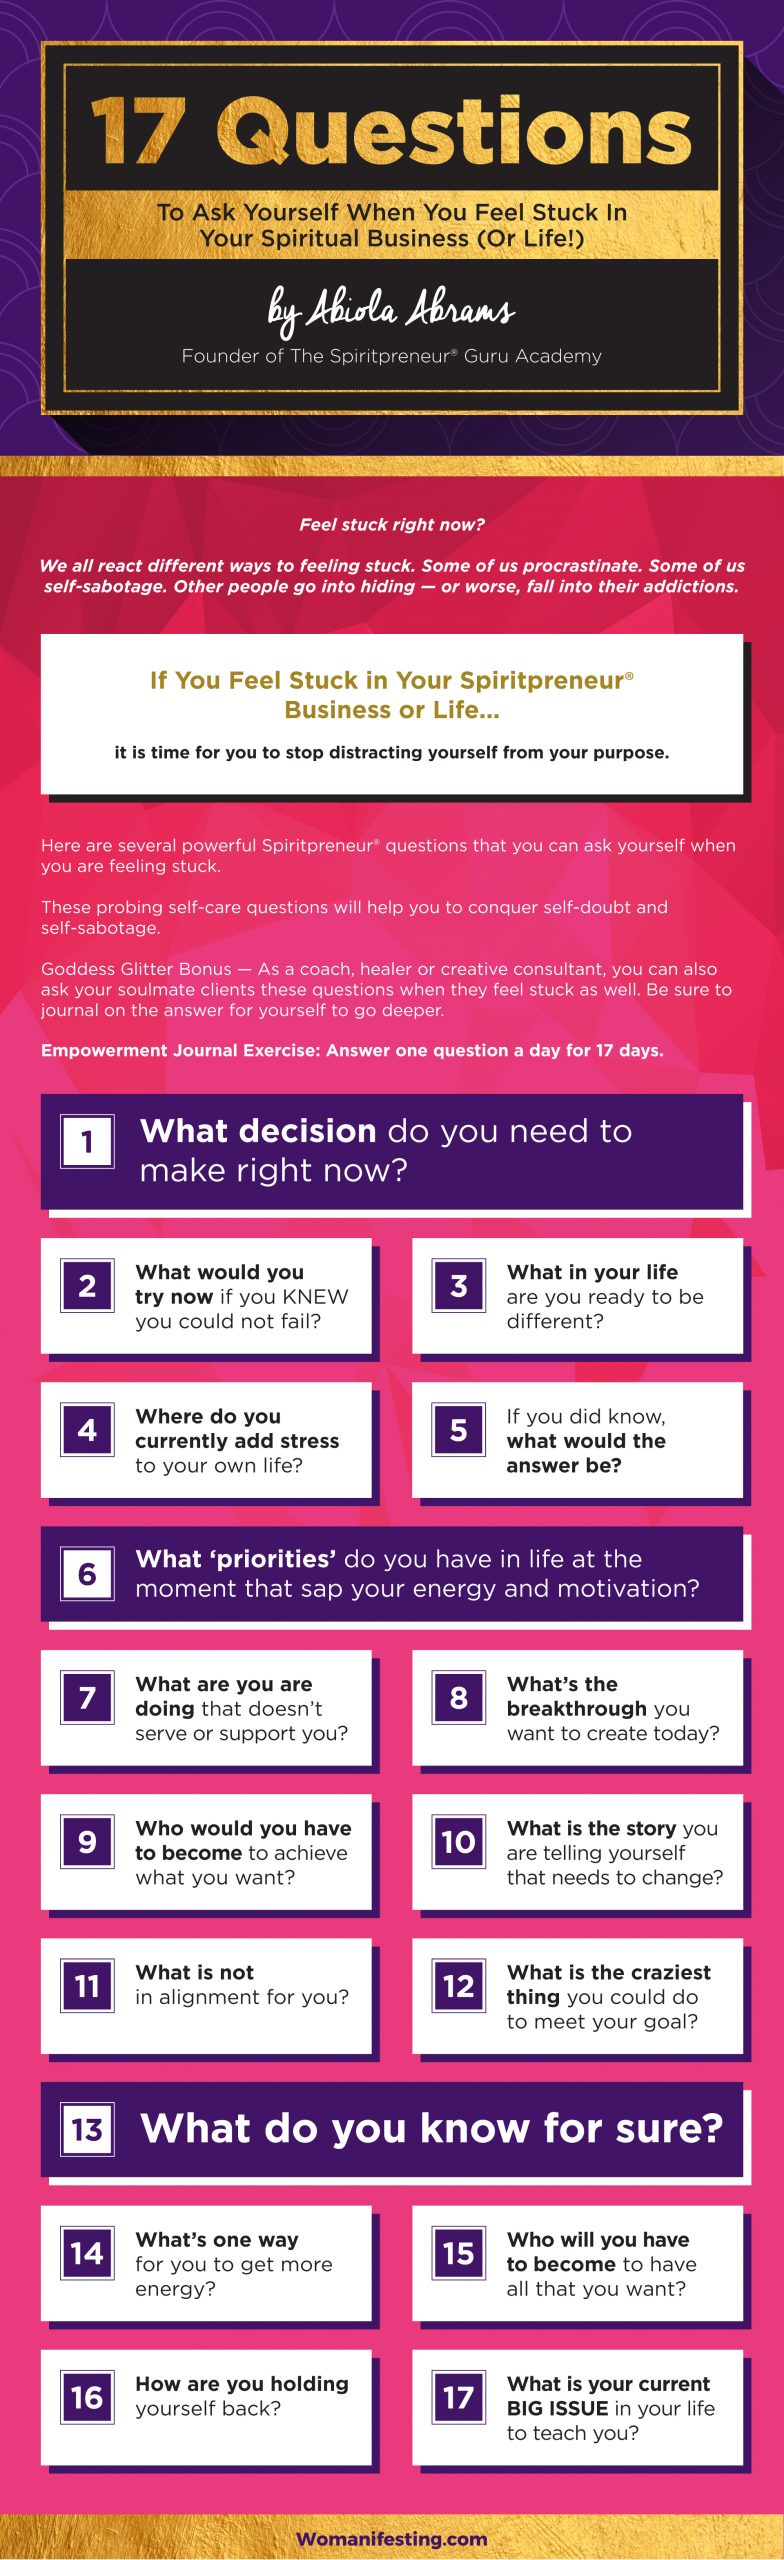 Spiritual Business Questions Infographic